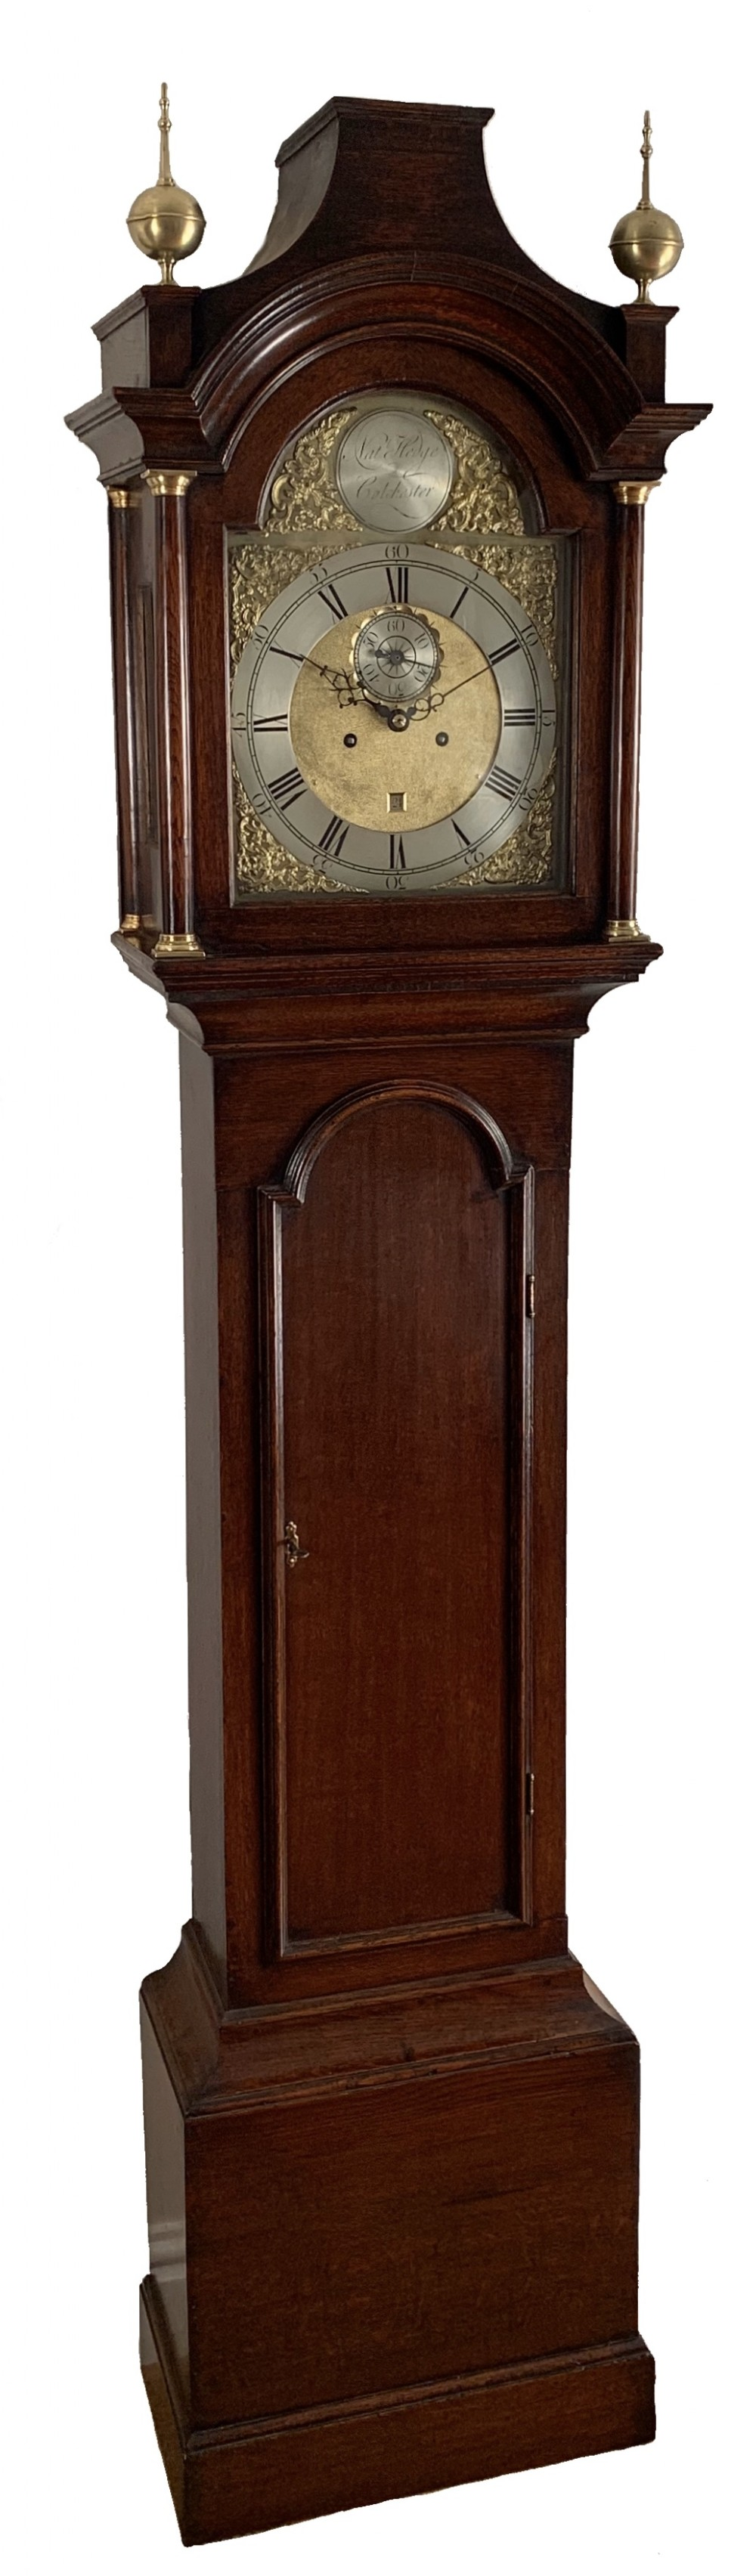 regulator longcase clock by hedge of colchester